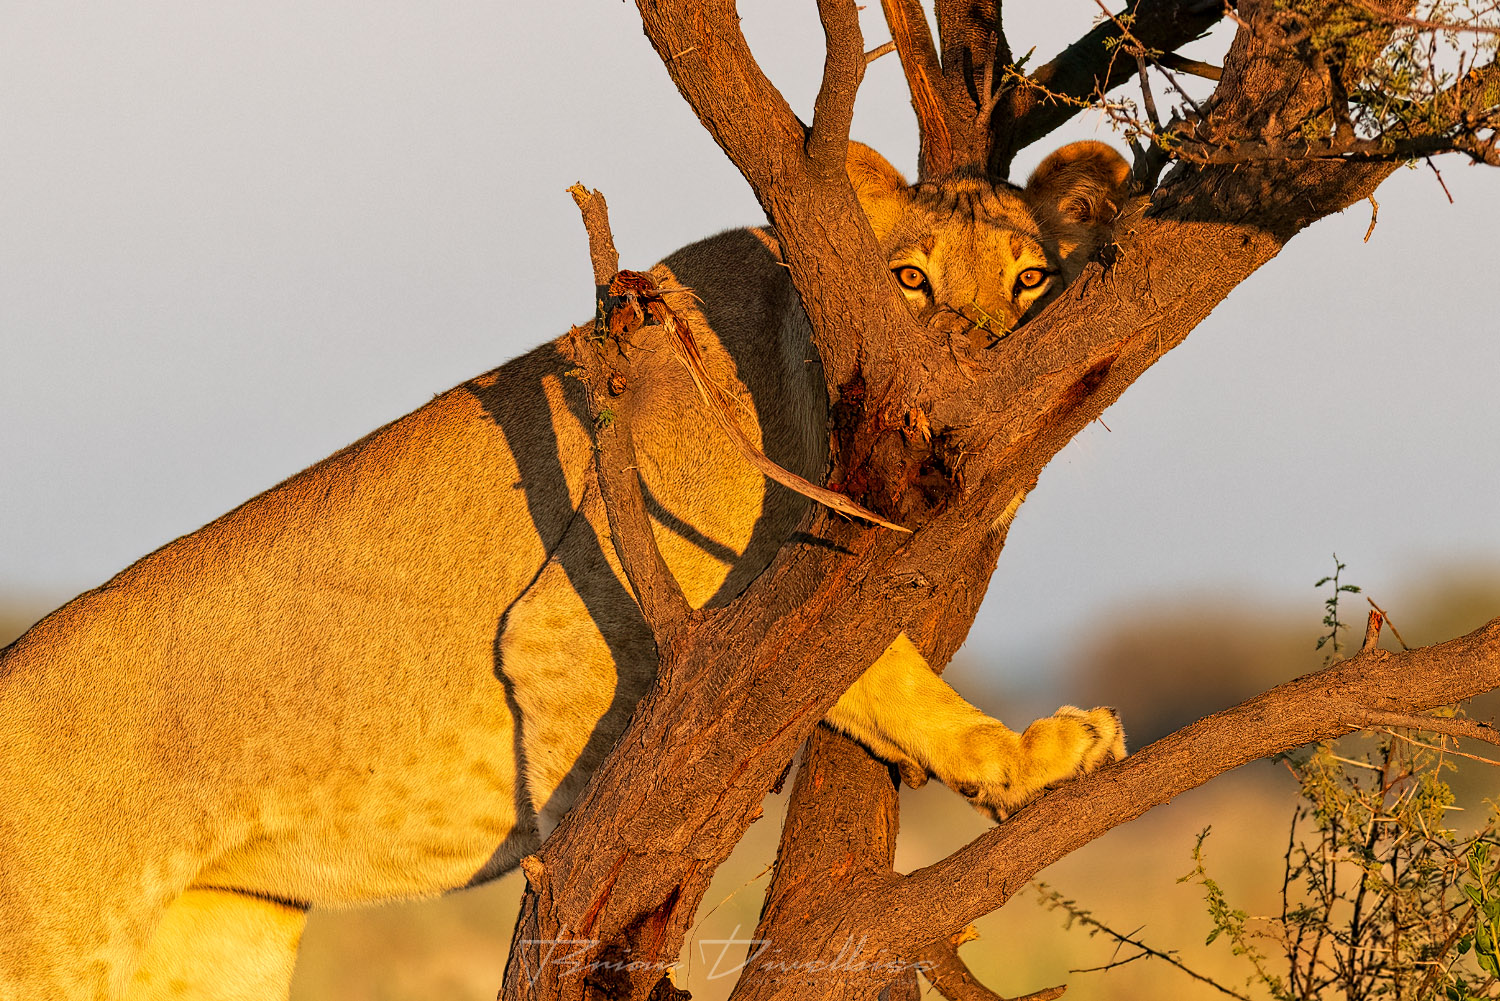 The steely eyes of a subadult lioness peering through the branches of a tree.